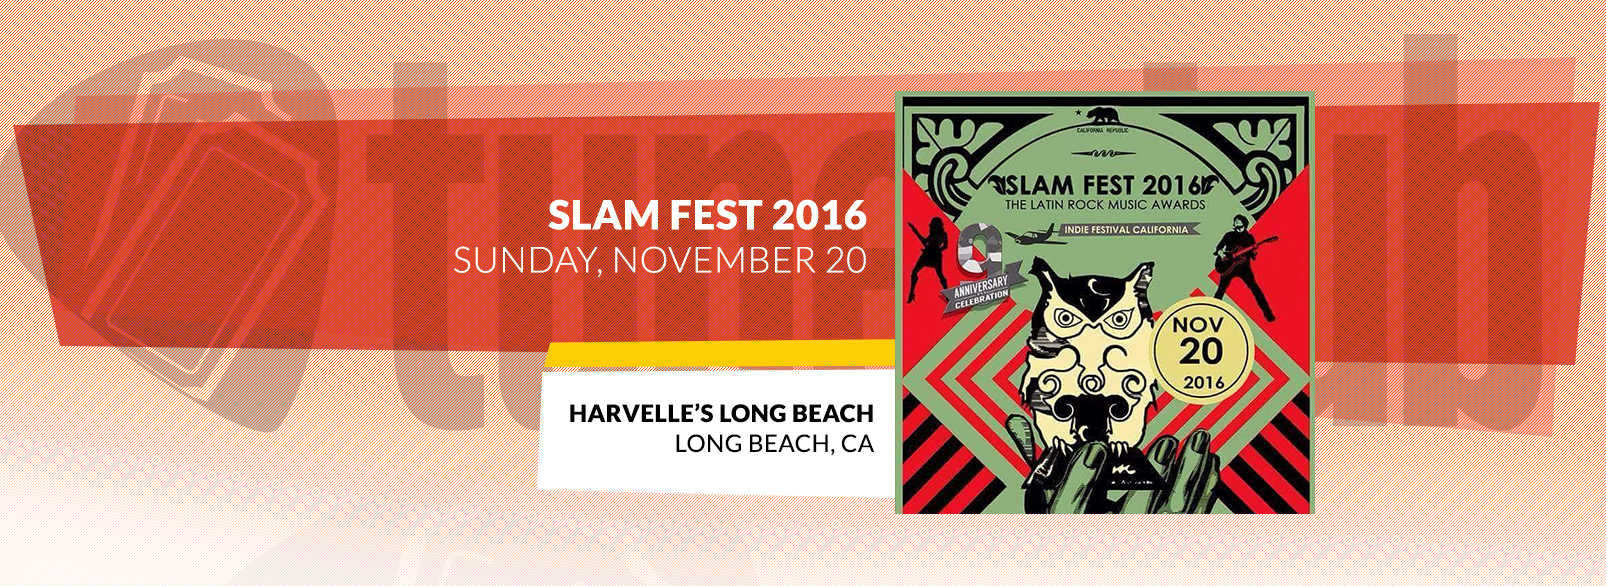 Slam Fest 2016 @ Harvelle's Long Beach